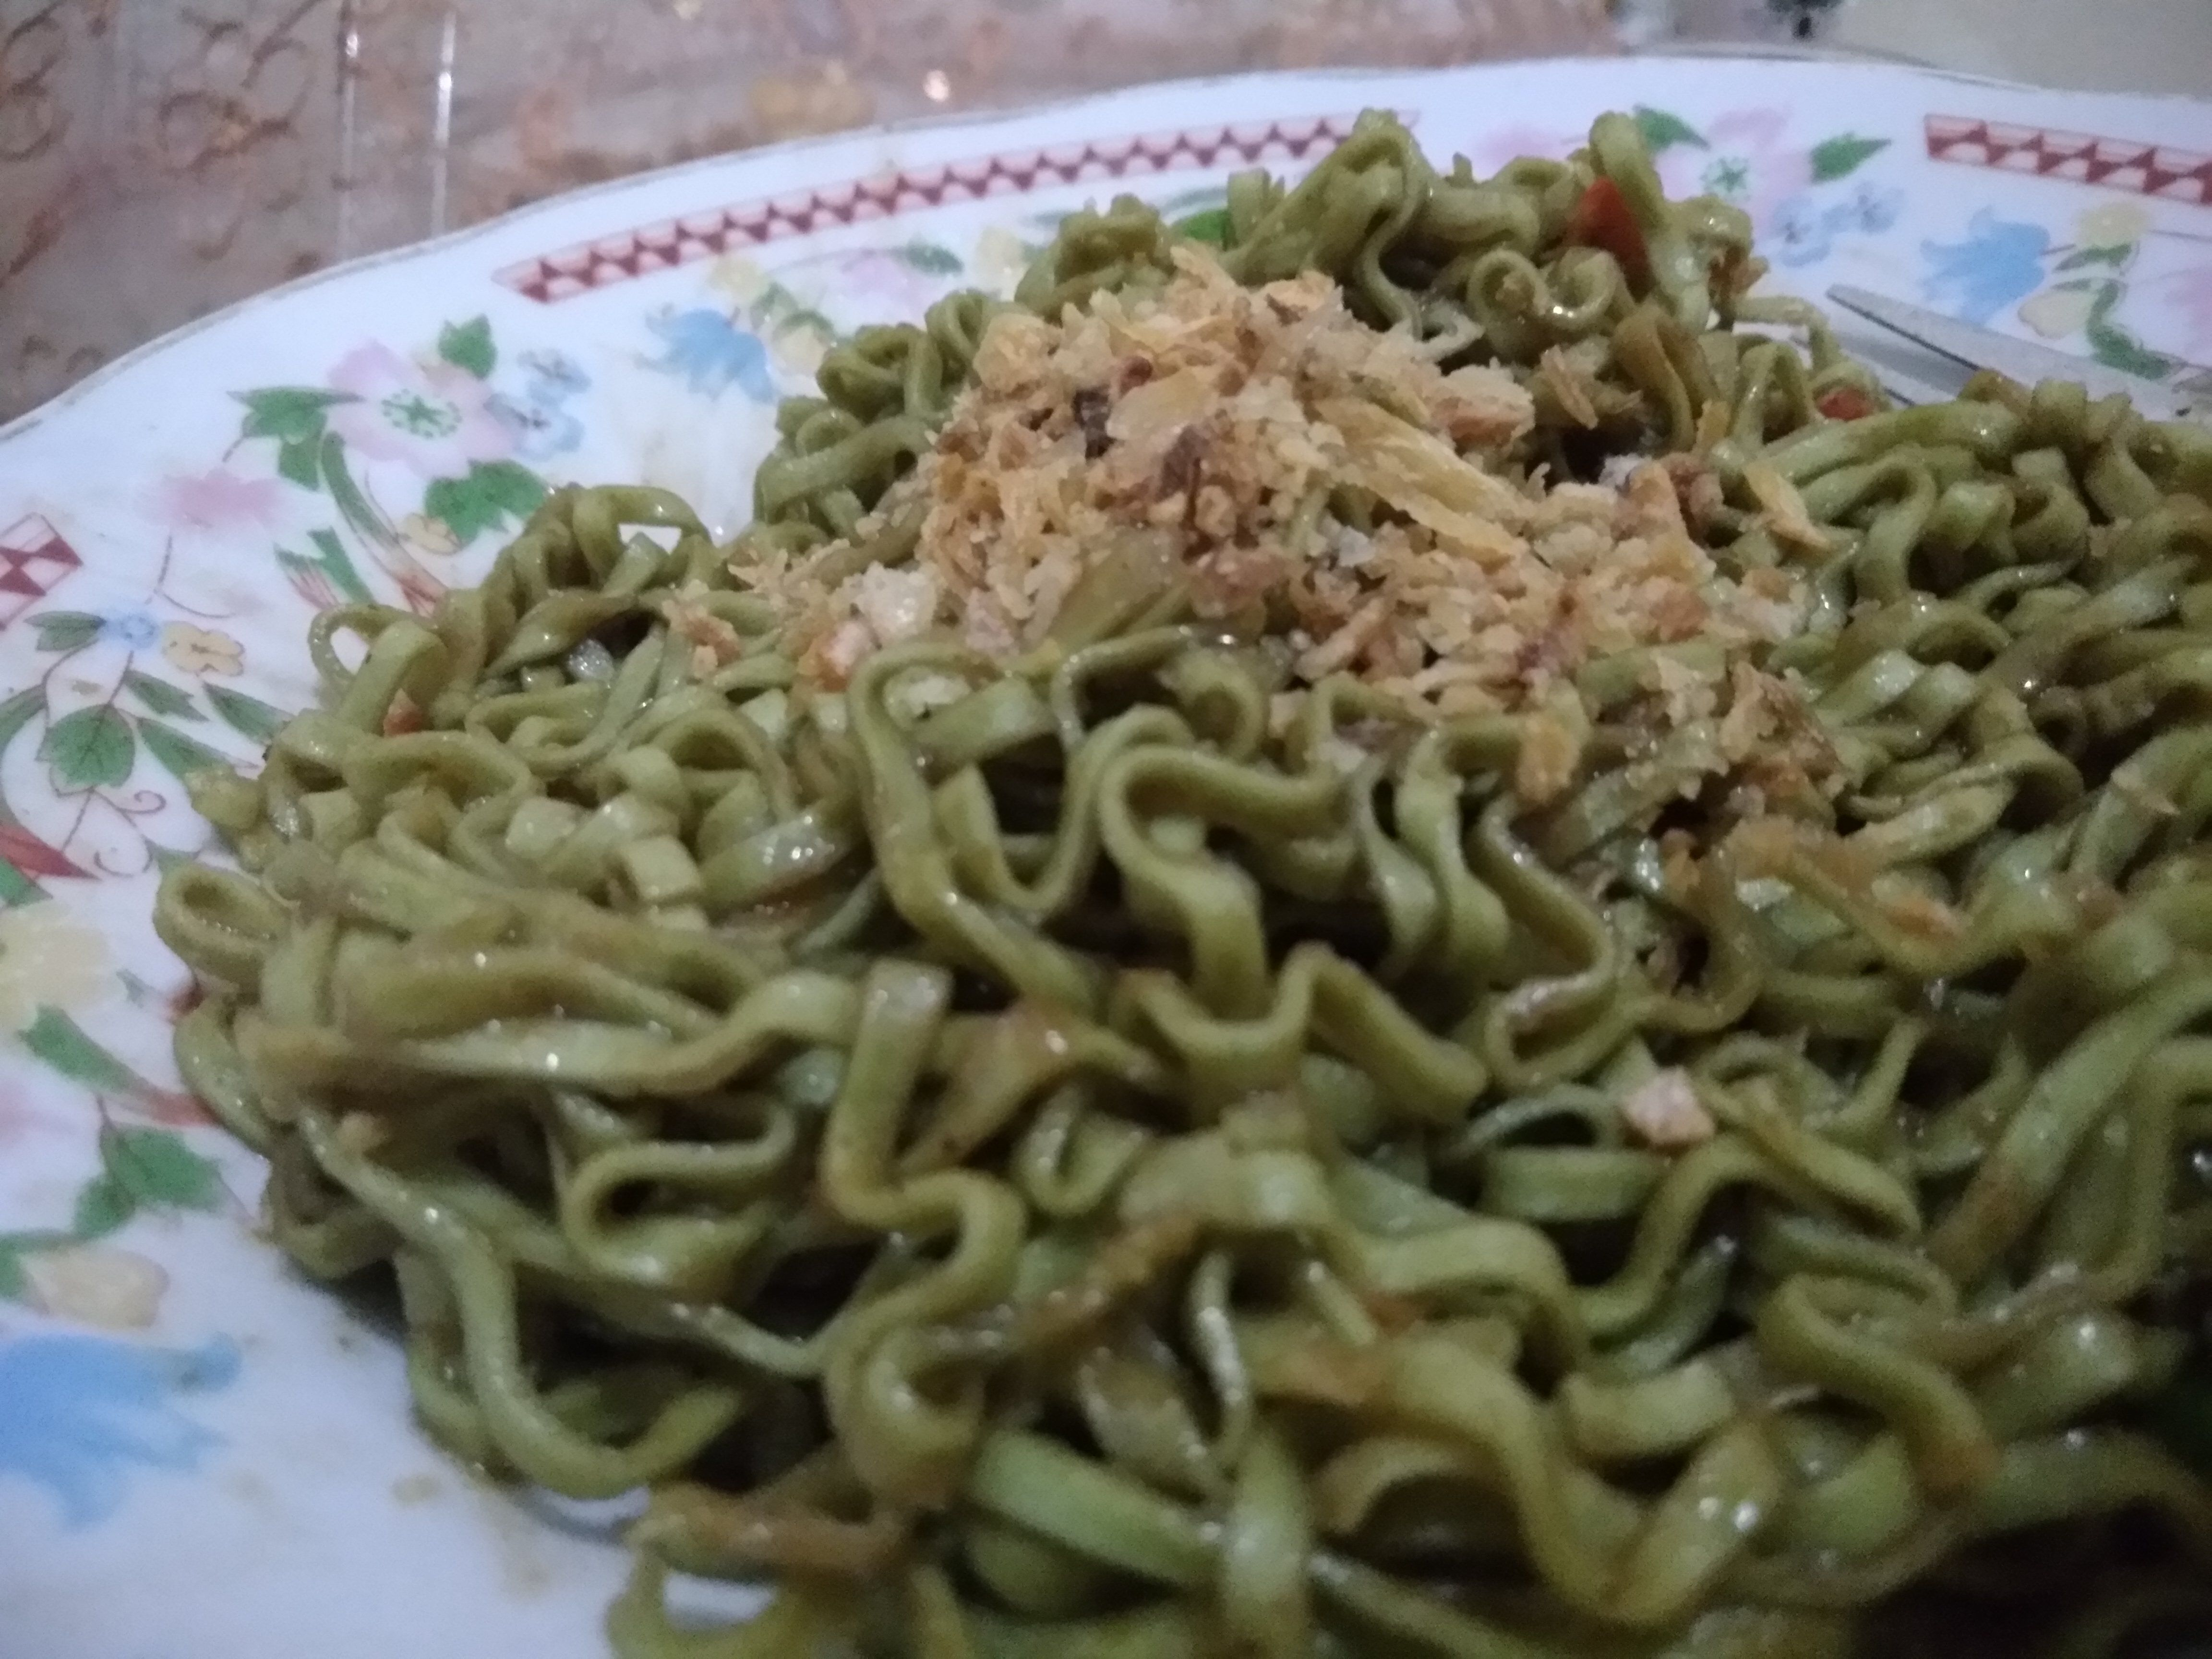 Healtimie - Goreng Healtimie Green Barley Noodle, Mi Siap Saji Low Fat and Less Sodium